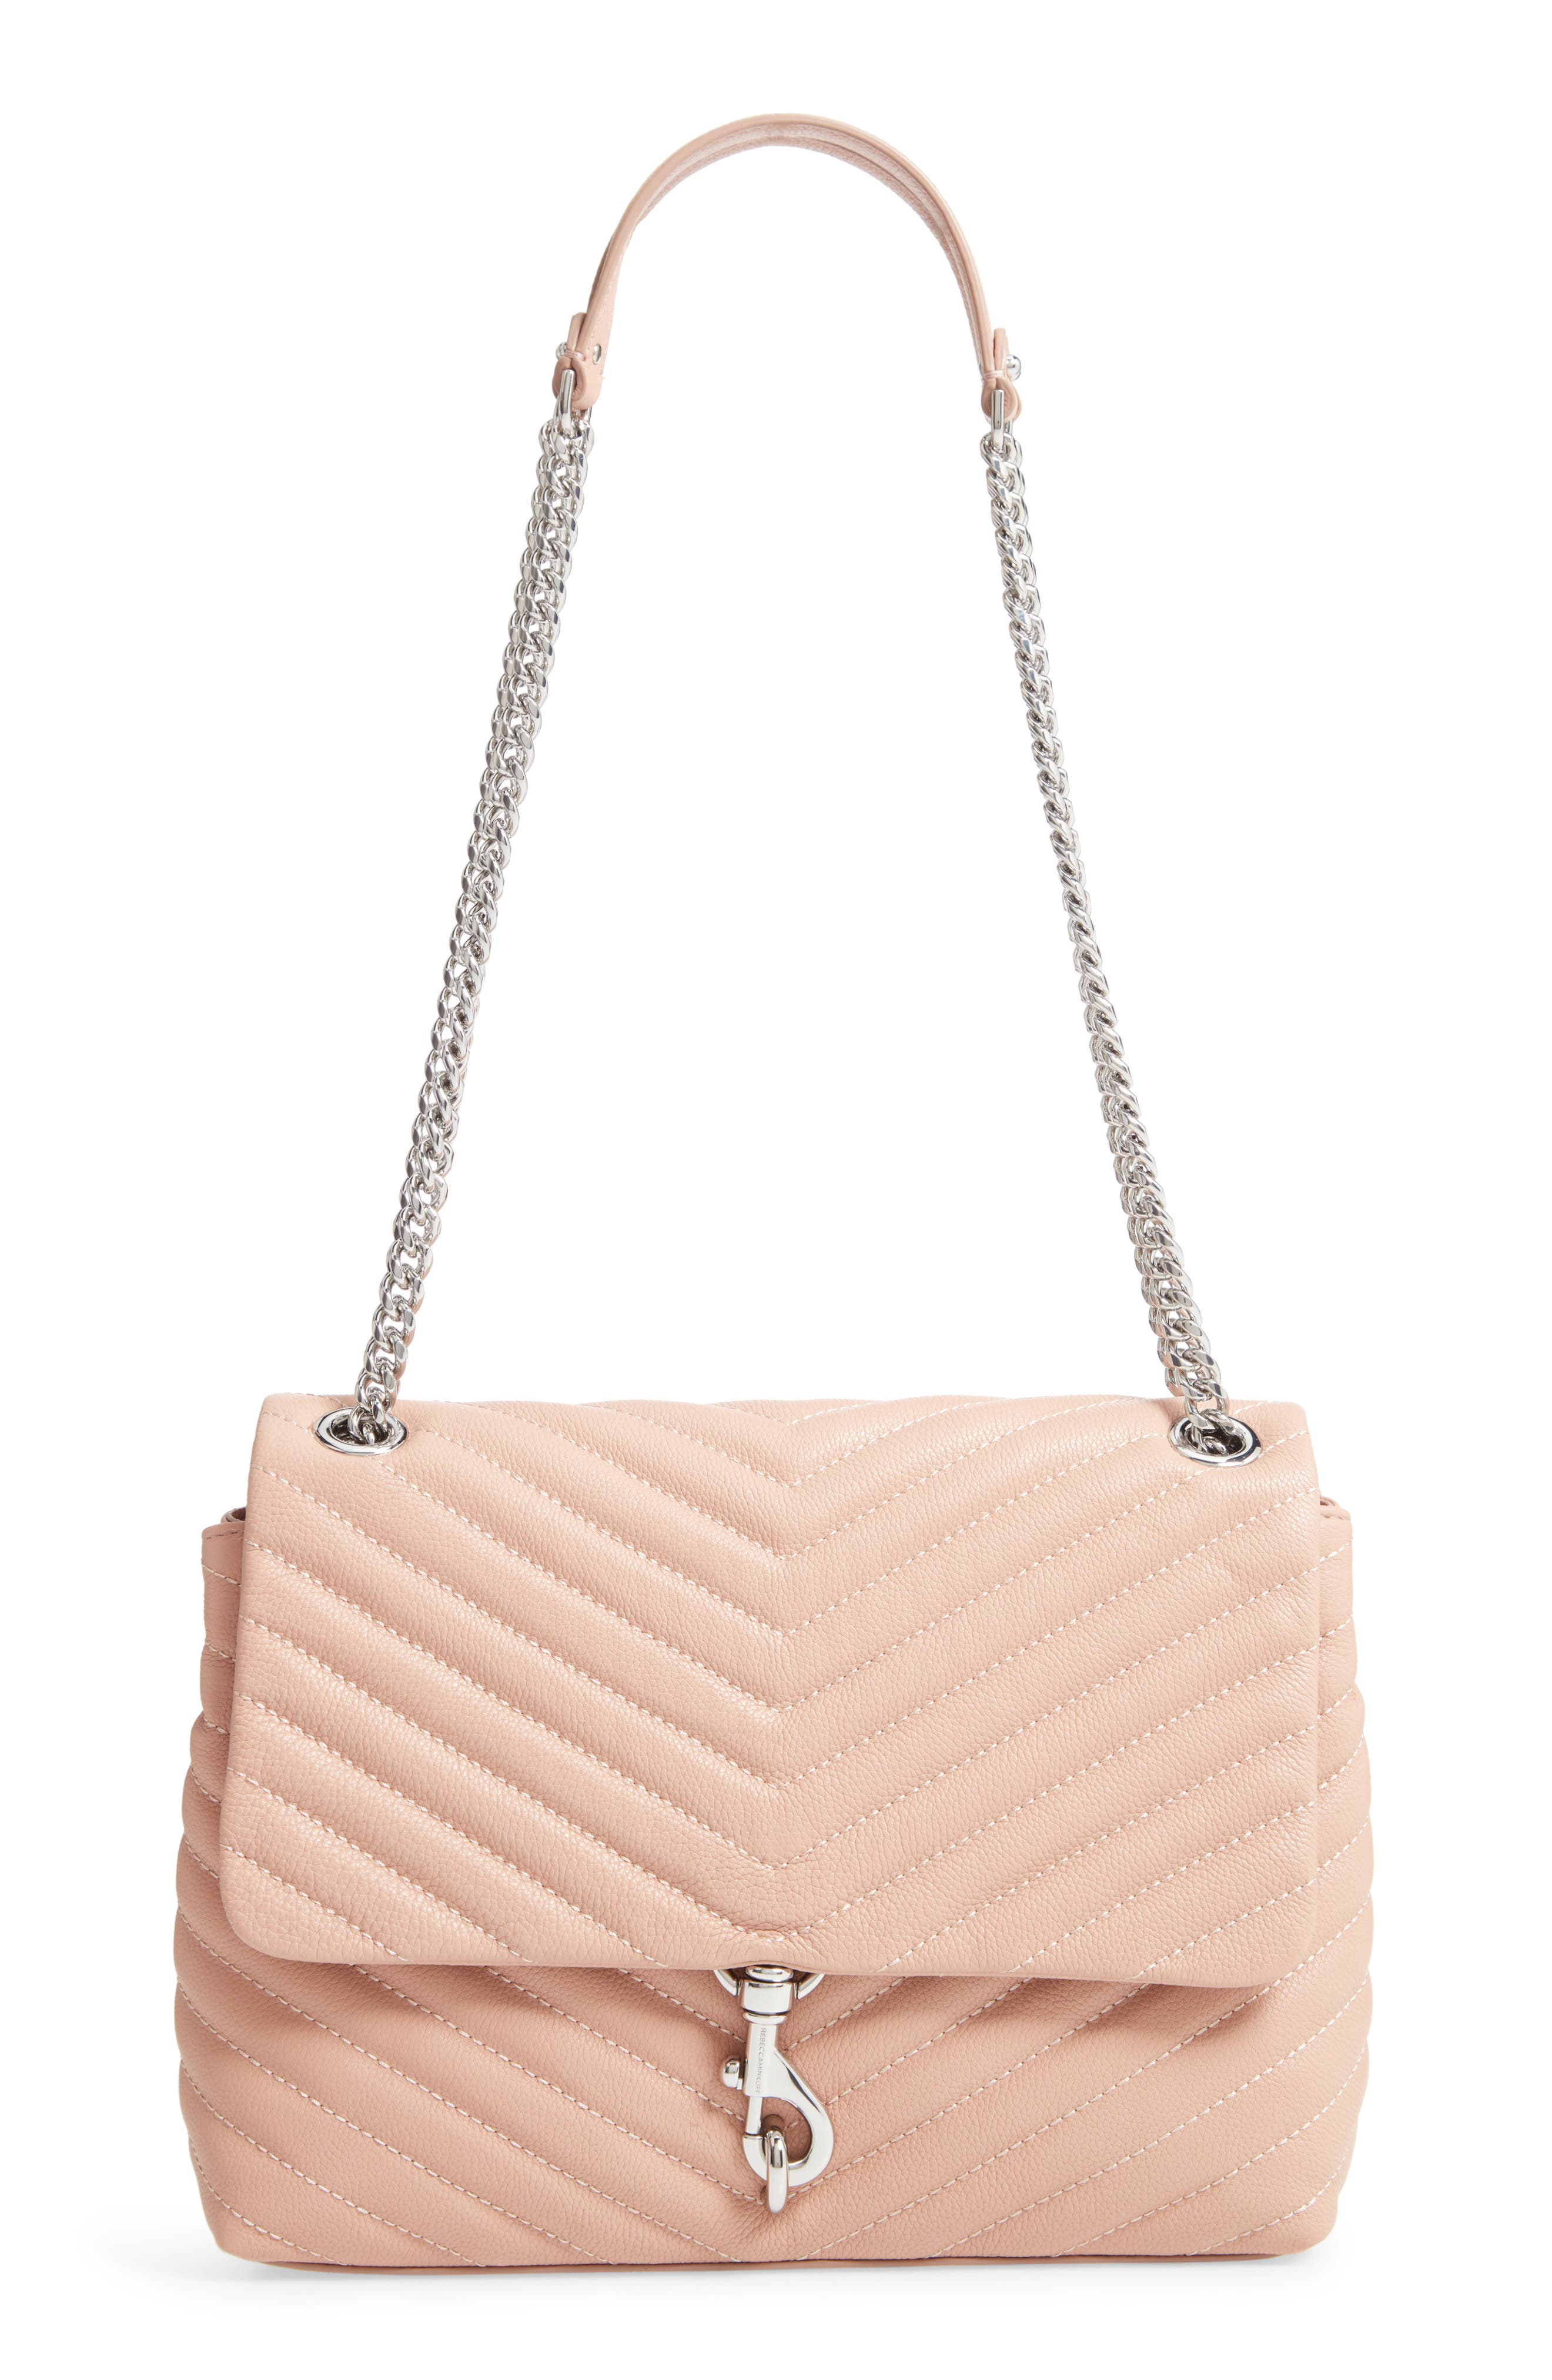 REBECCA MINKOFF, Edie Flap Quilted Leather Shoulder Bag, Main thumbnail 1, color, DOE